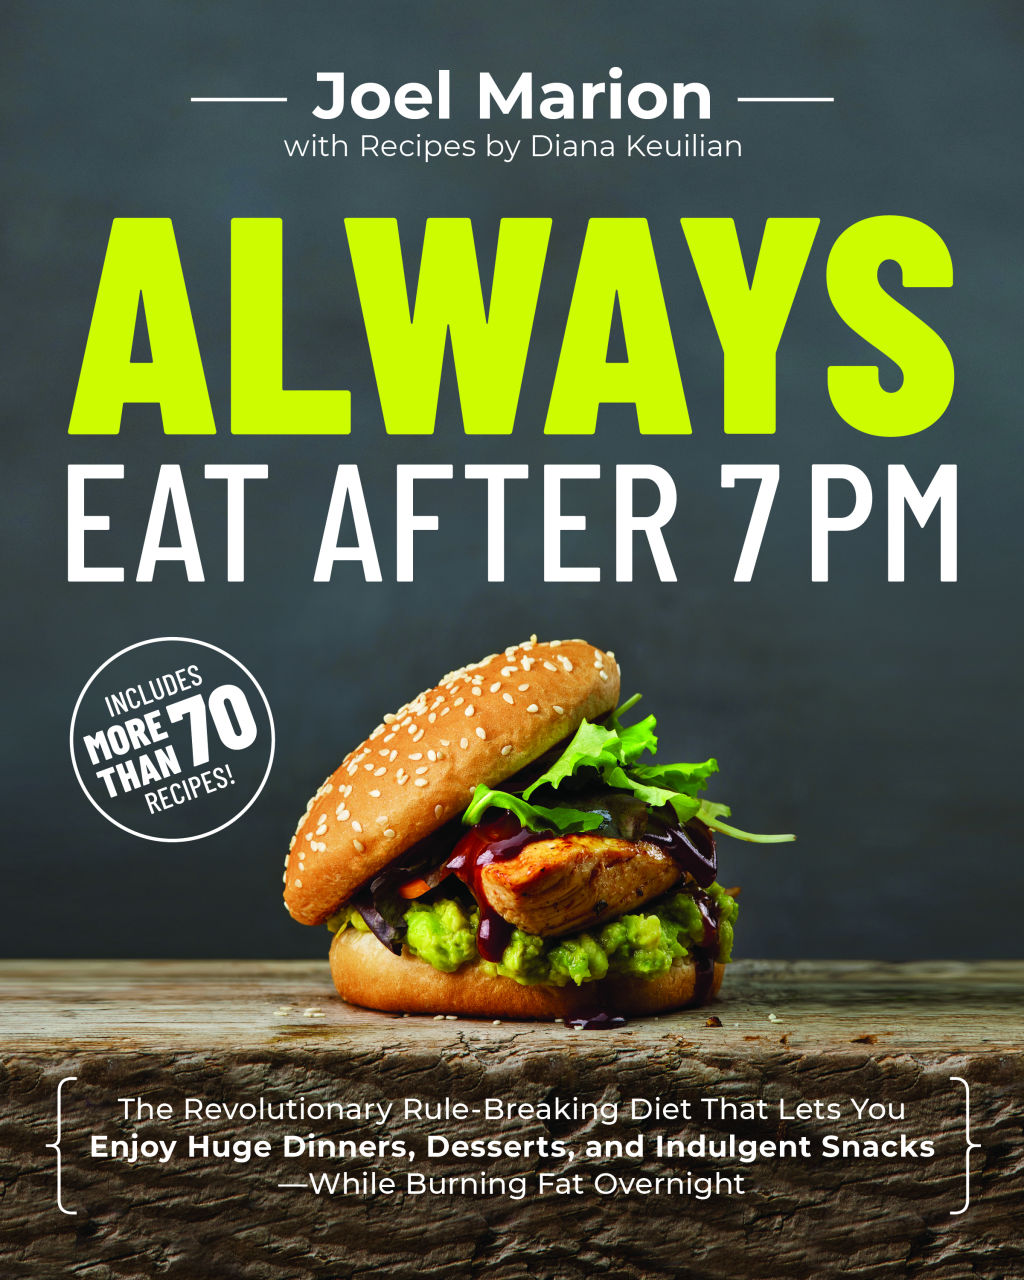 Always Eat After 7 PM book cover with chicken sandwich on wood counter